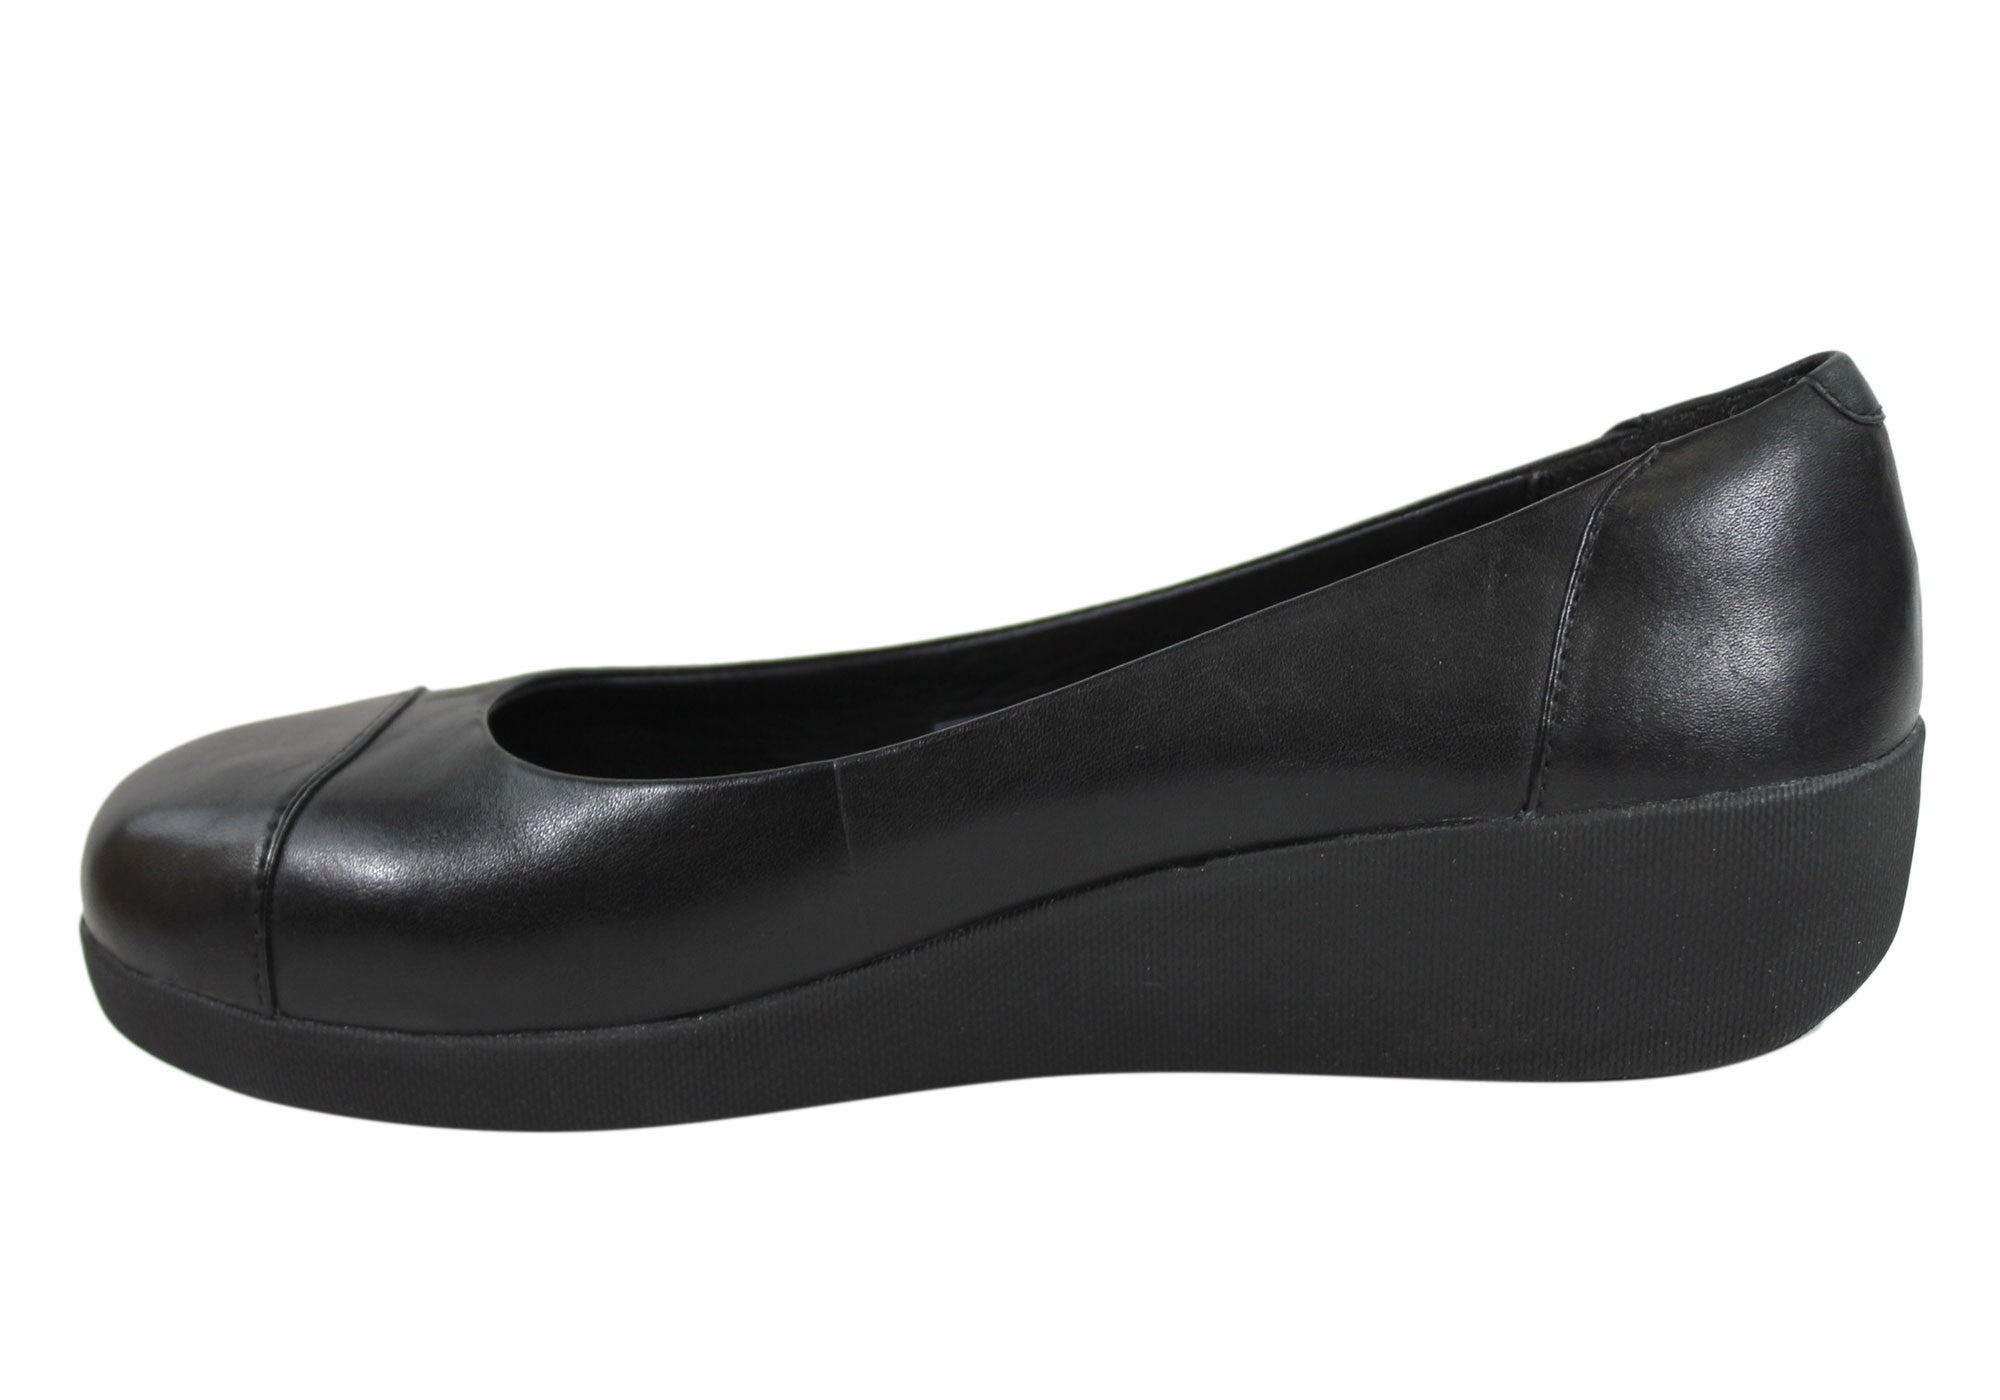 Fitflop F-Pop Ballerina Womens Leather Comfort Shoes